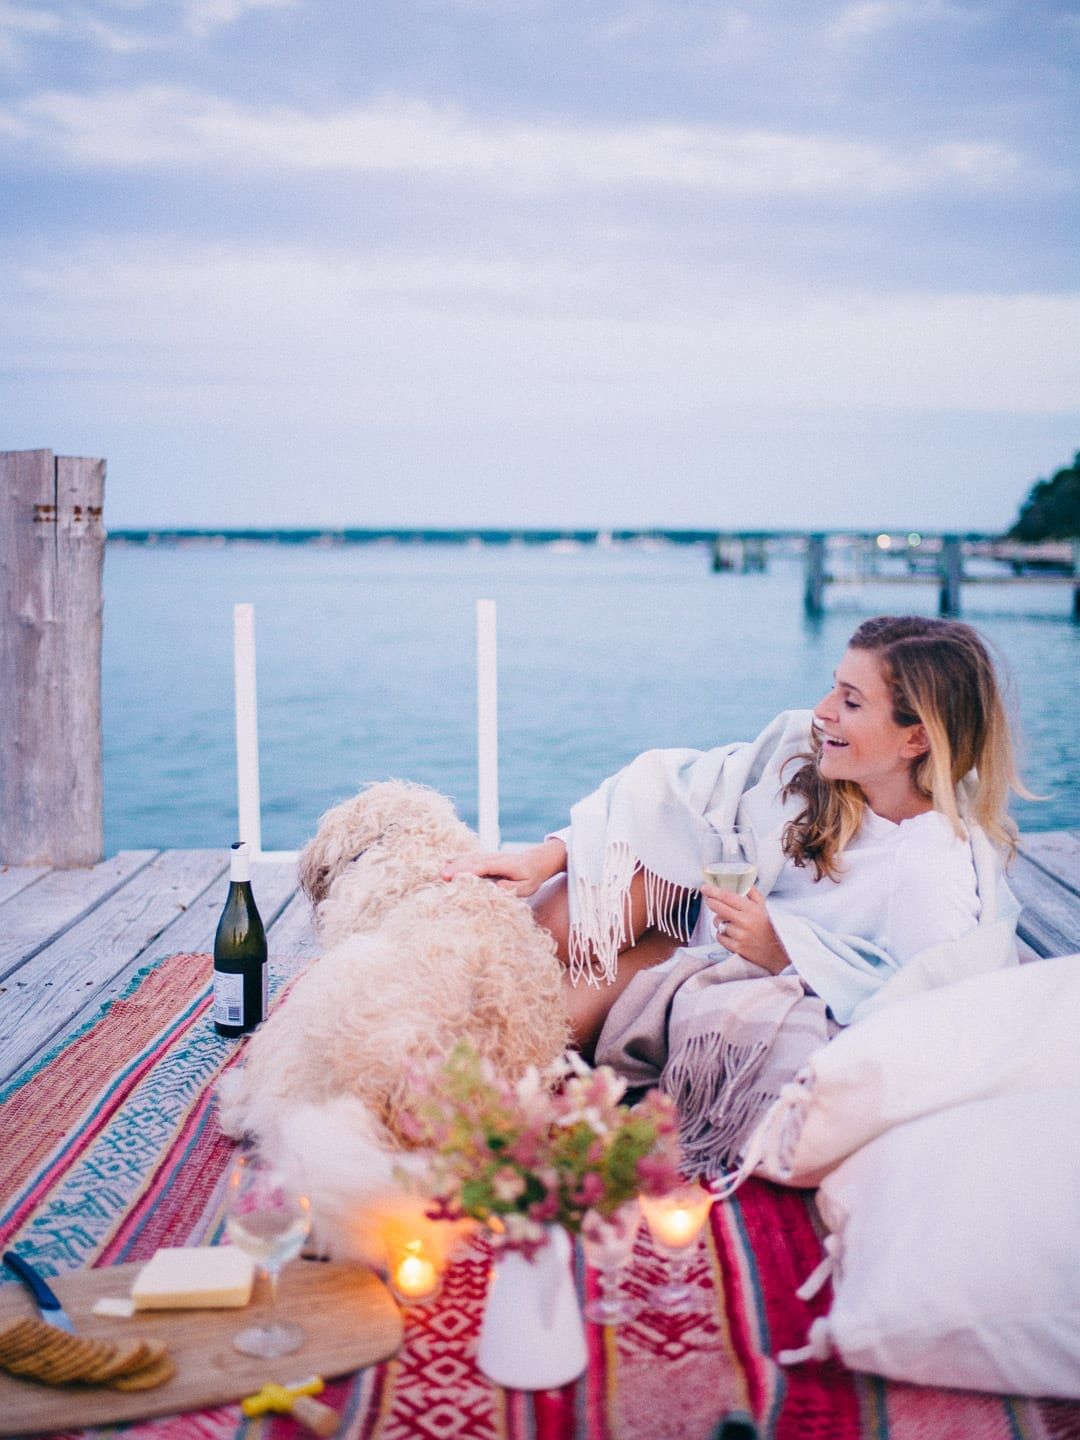 Date night on a dock in Martha's Vineyard